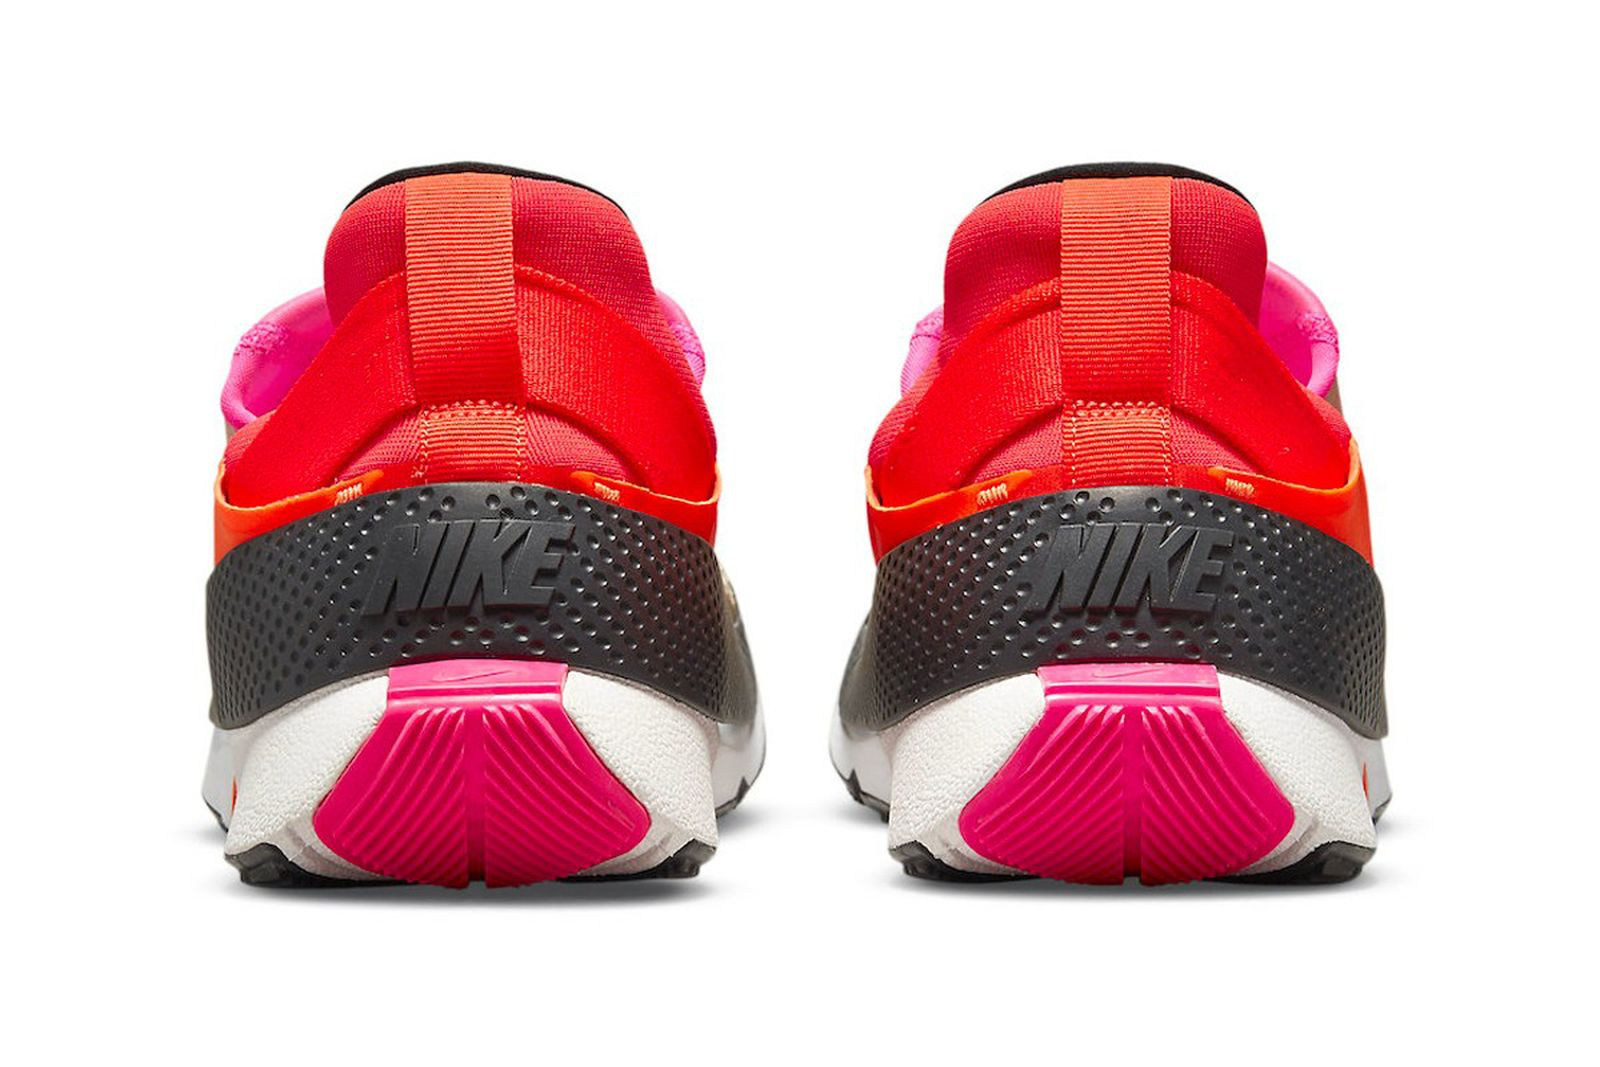 nike-go-flyease-red-black-release-date-price-05